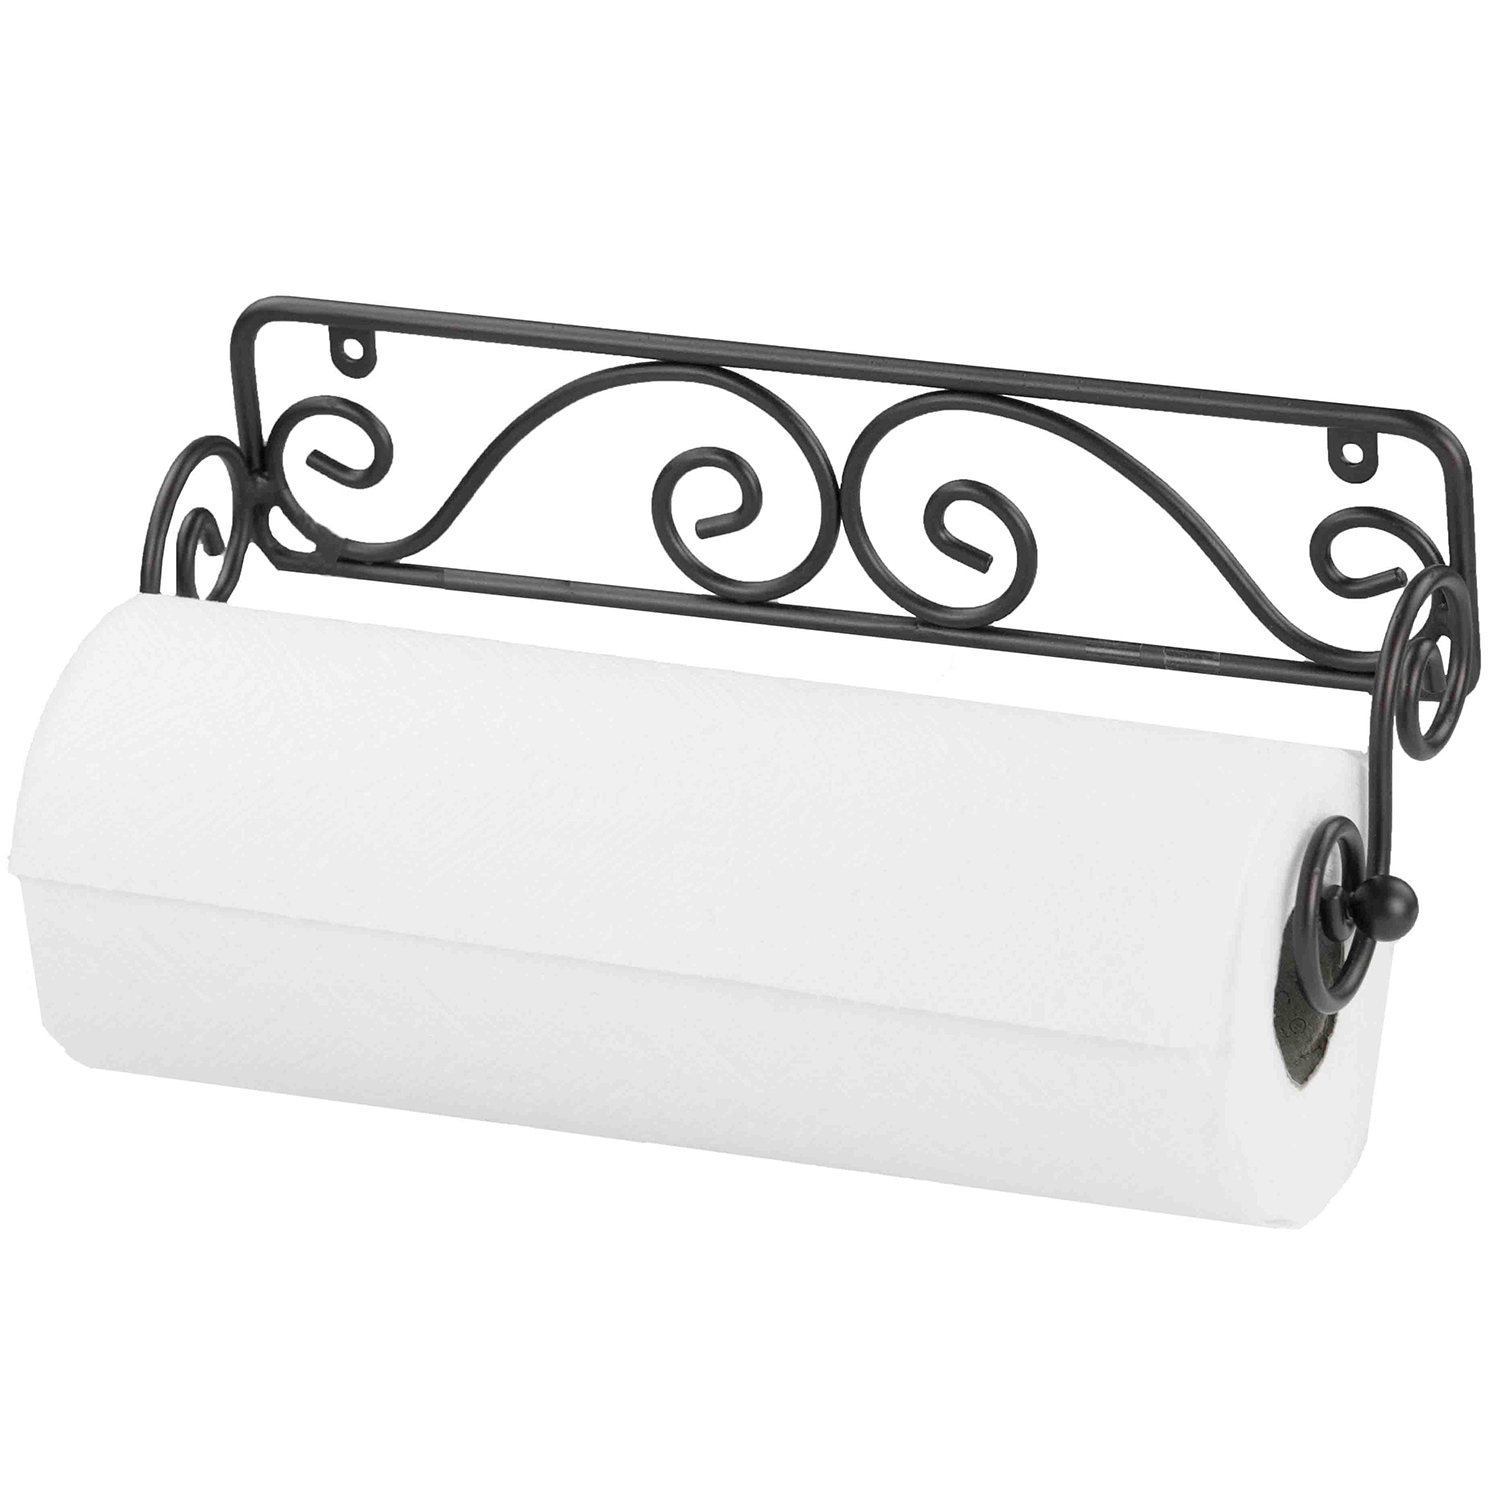 Wall-Mounted Scroll Paper Towel Holder